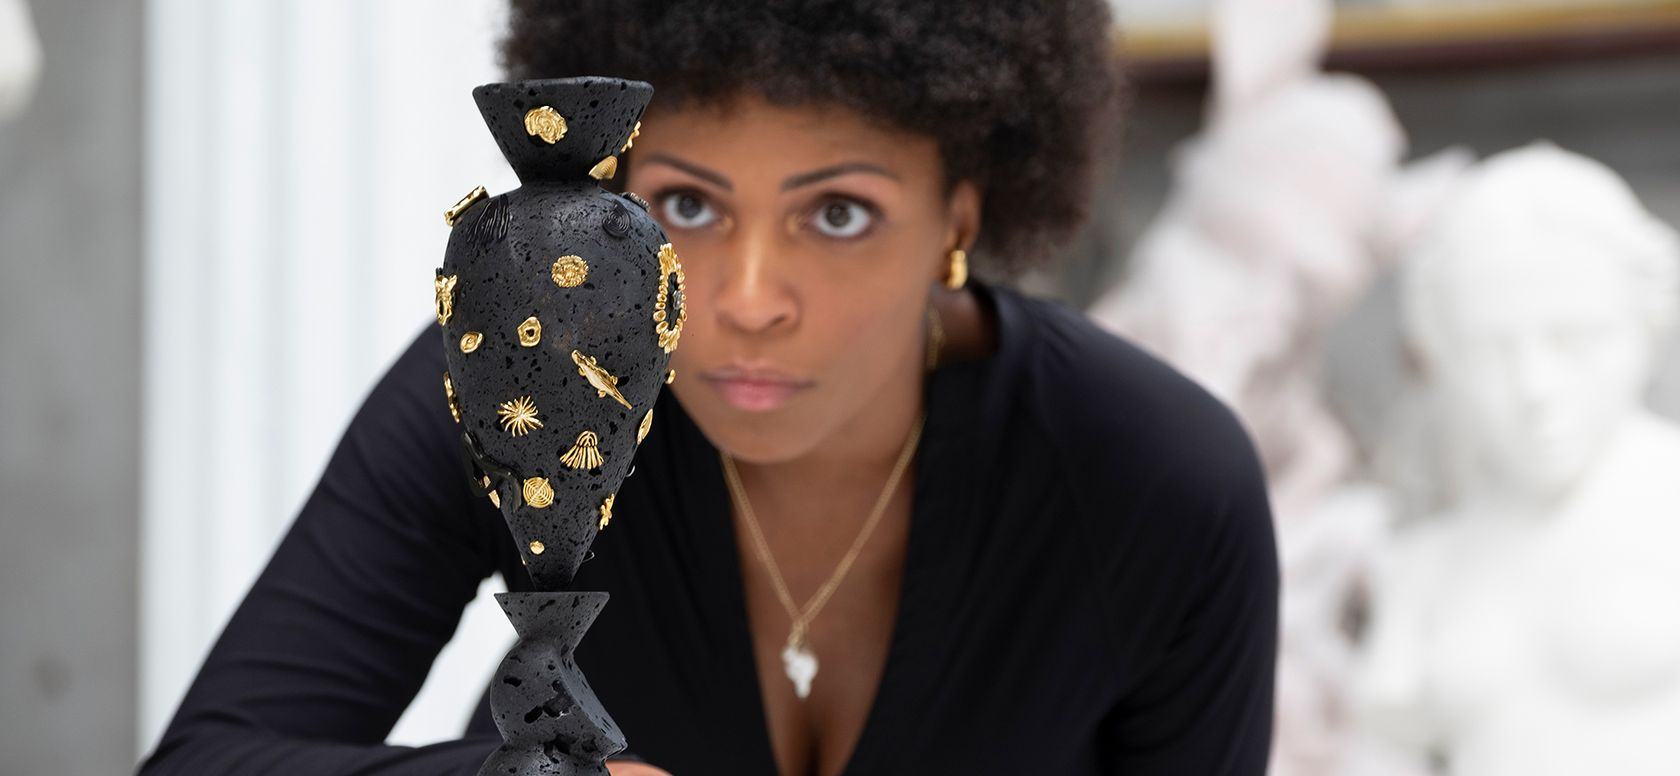 artist wearing gold jewellery inspects a black basalt sculpture from behind a white marble table